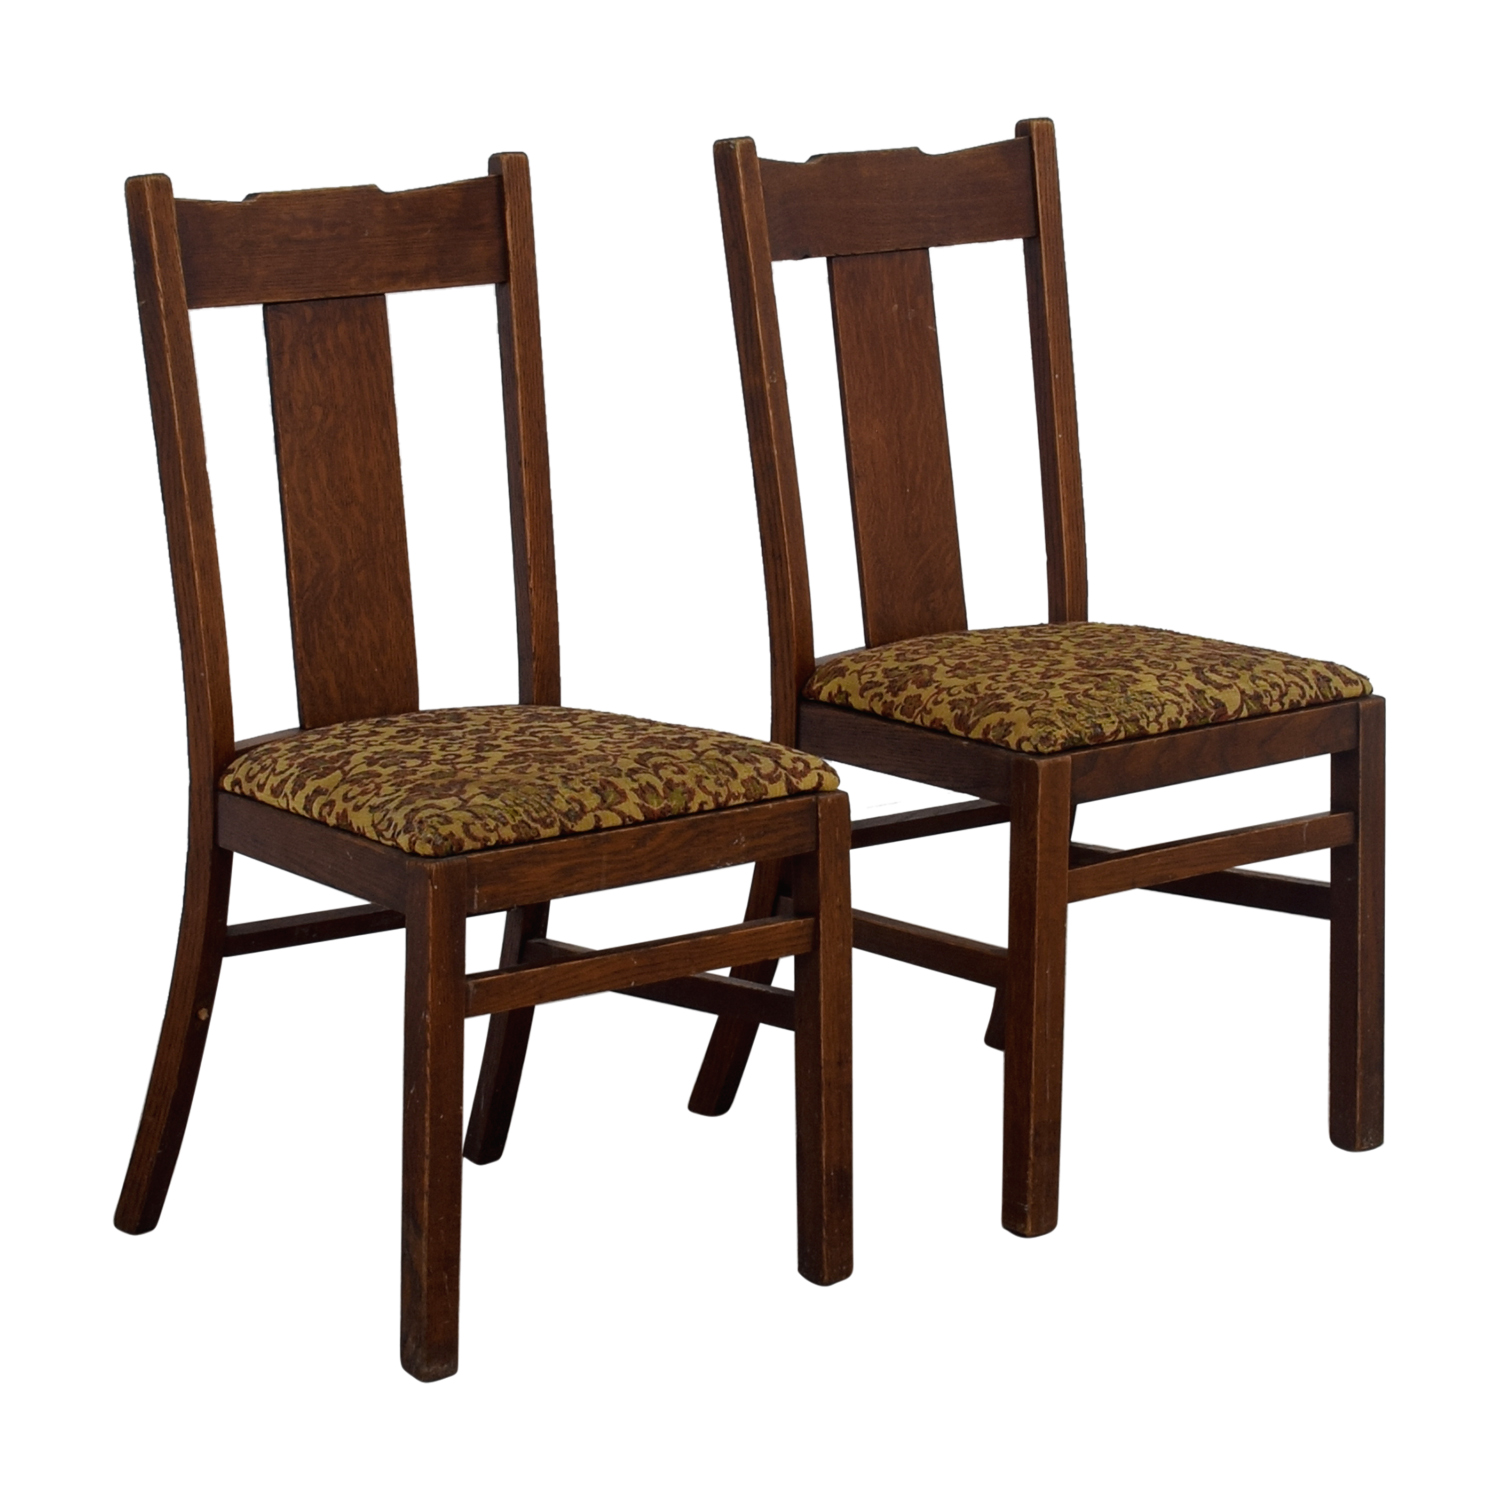 Antique Mission Upholstered Chairs nj